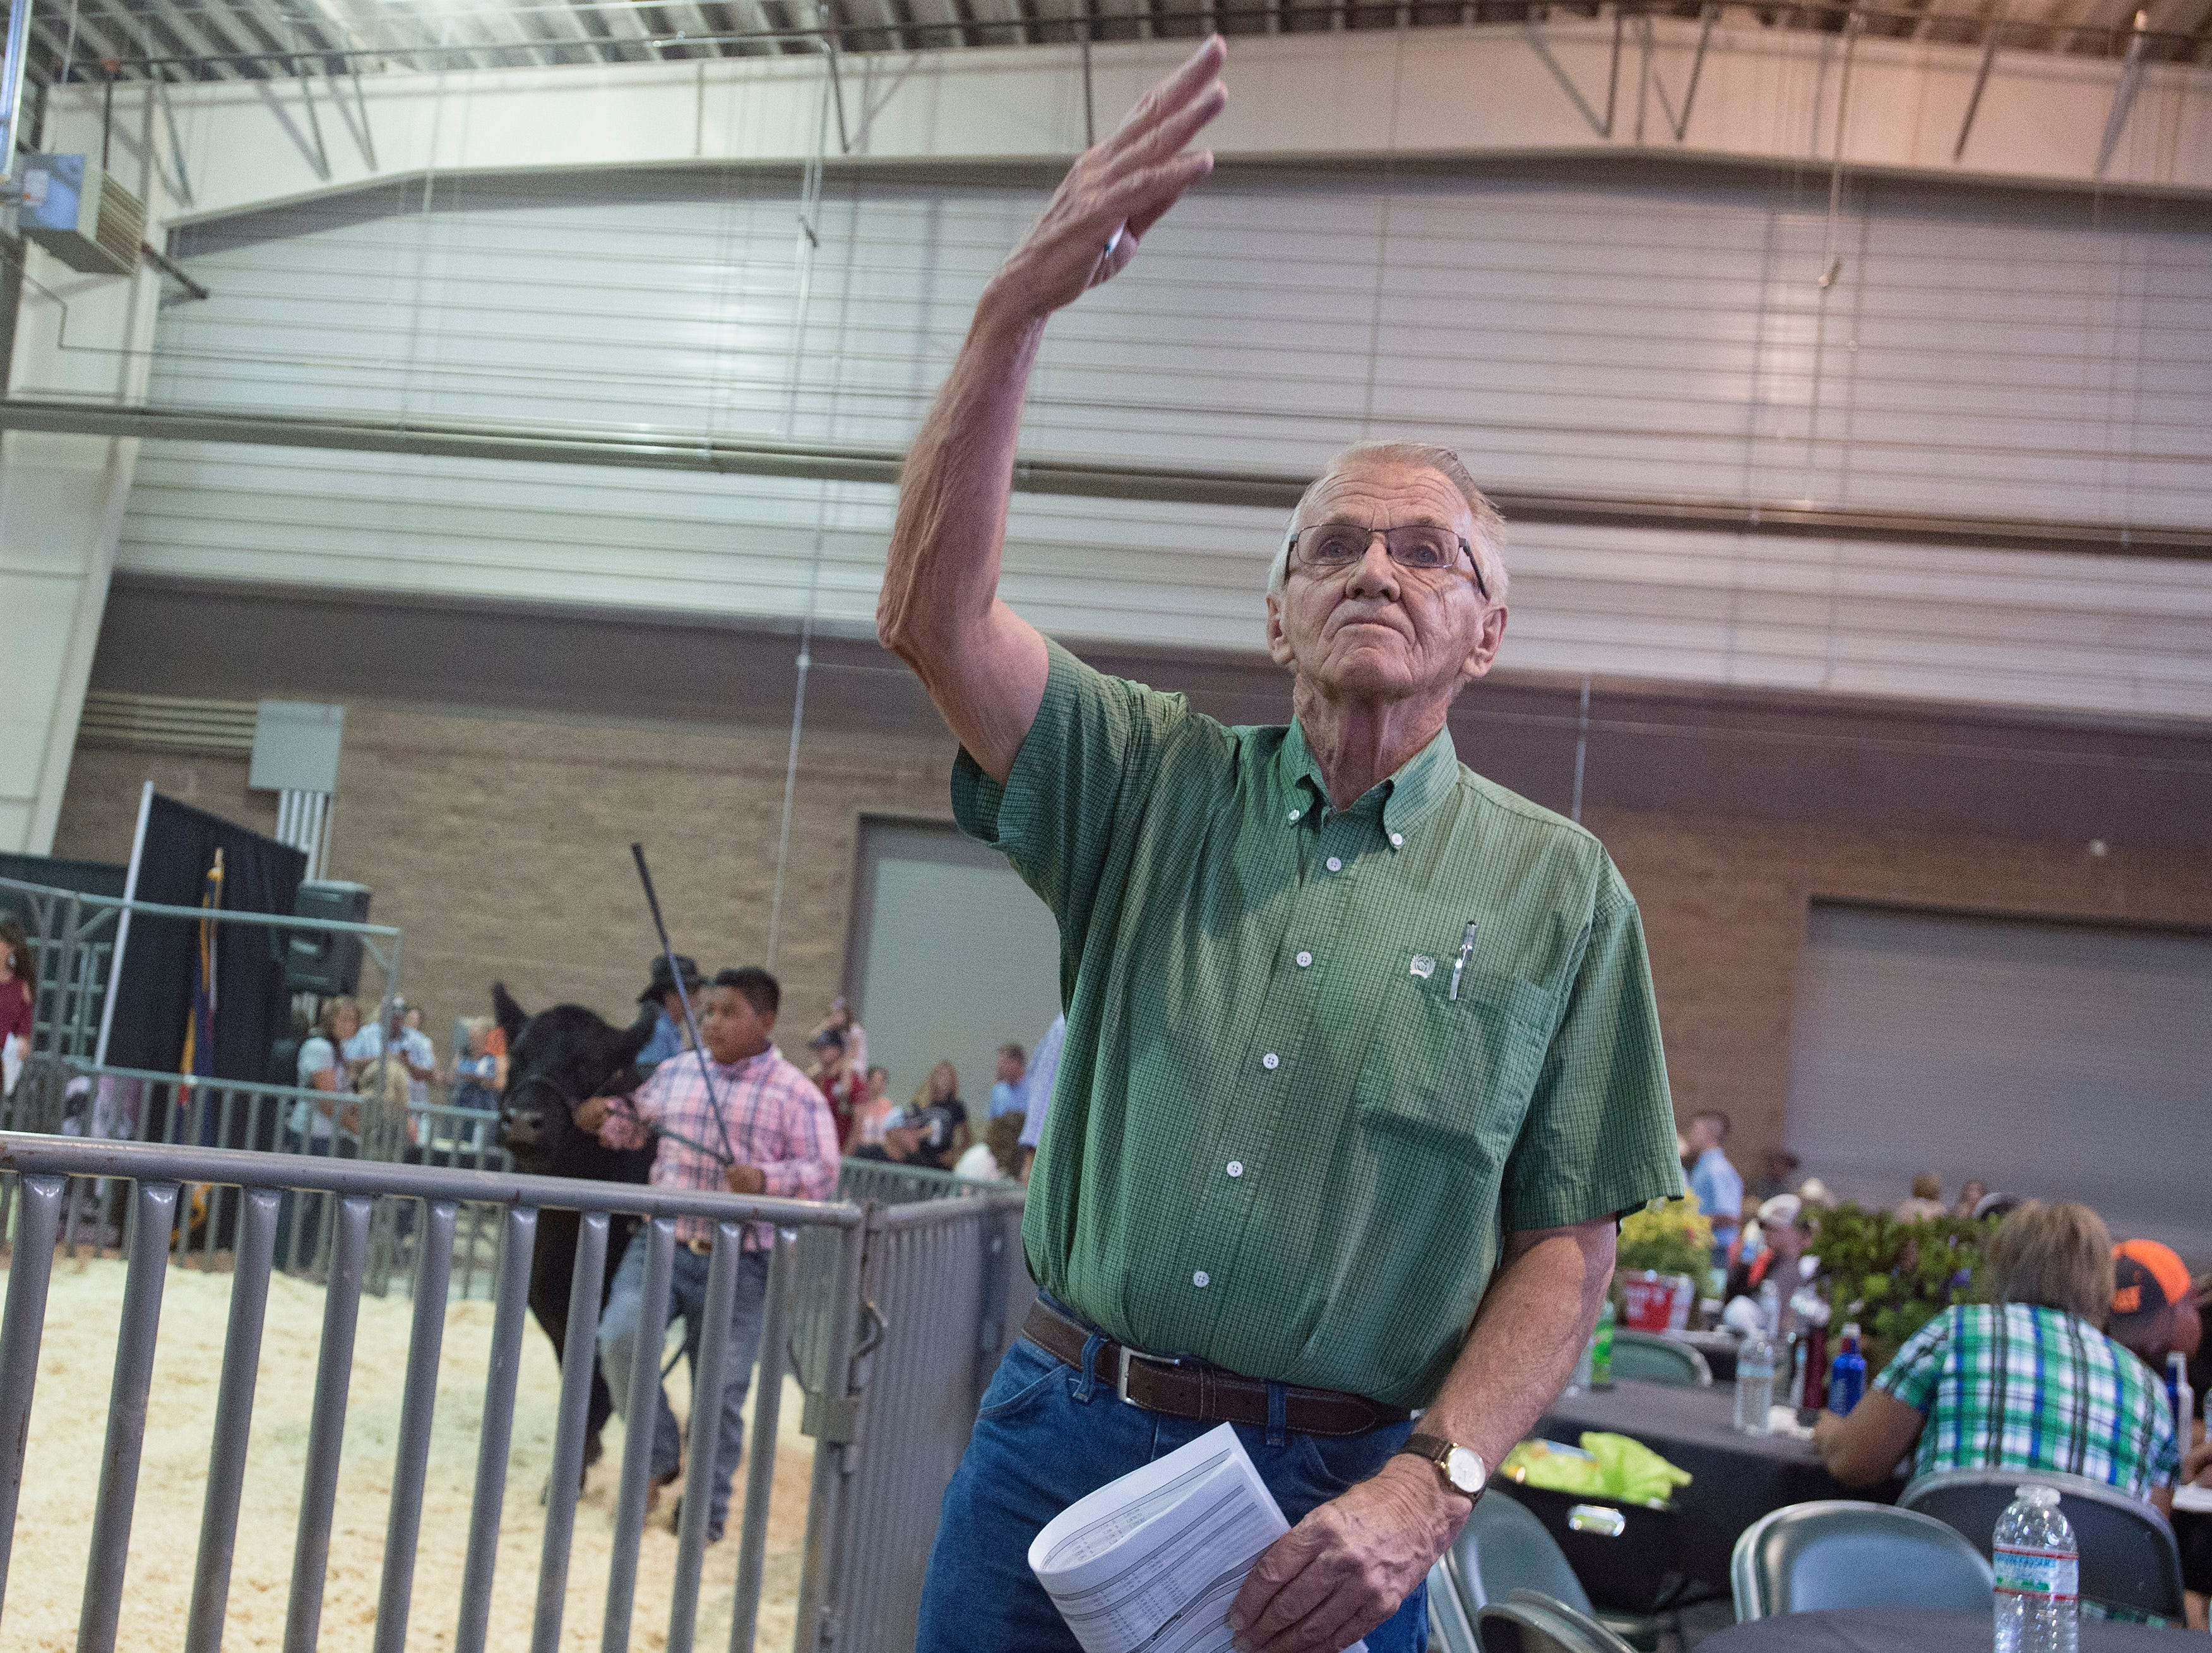 Don Cook calls out bids during the Larimer County Fair Youth Livestock Sale at The Ranch in Loveland on Wednesday, August 8, 2018.